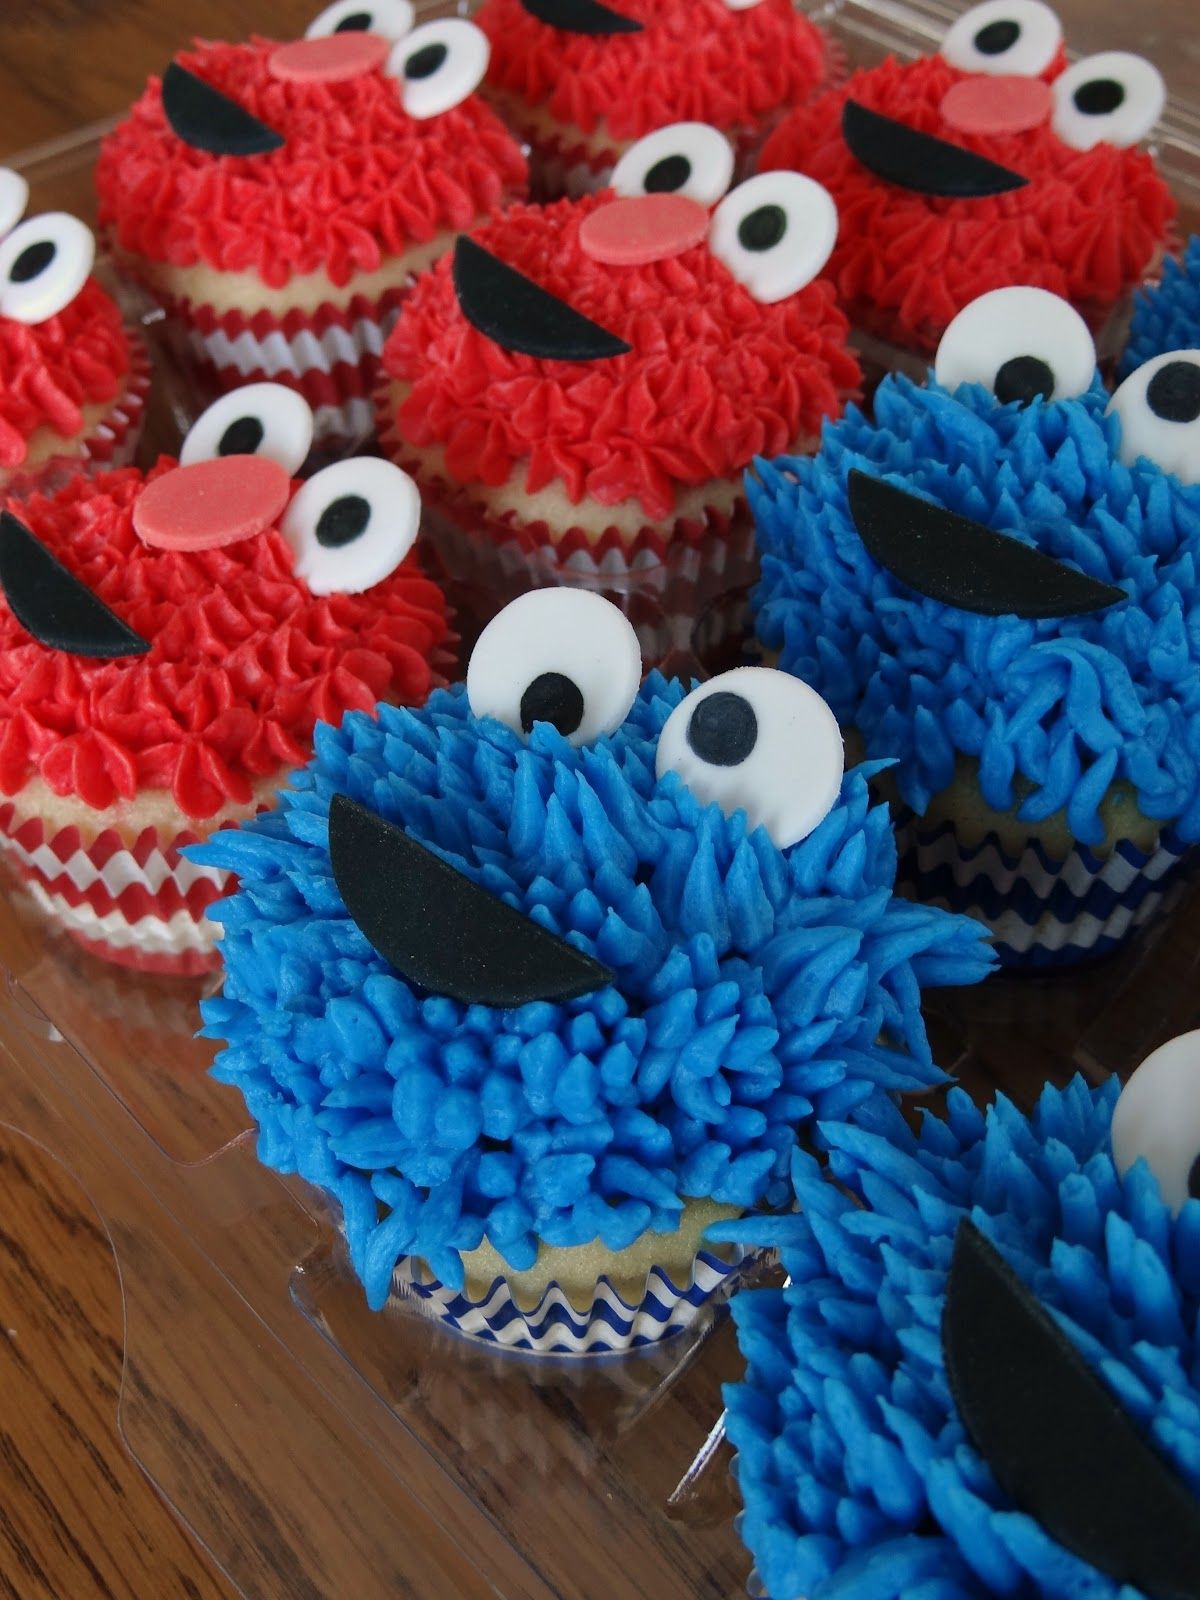 Libby's Cupcakes Etc: Cookie Monster & Elmo Cupcakes